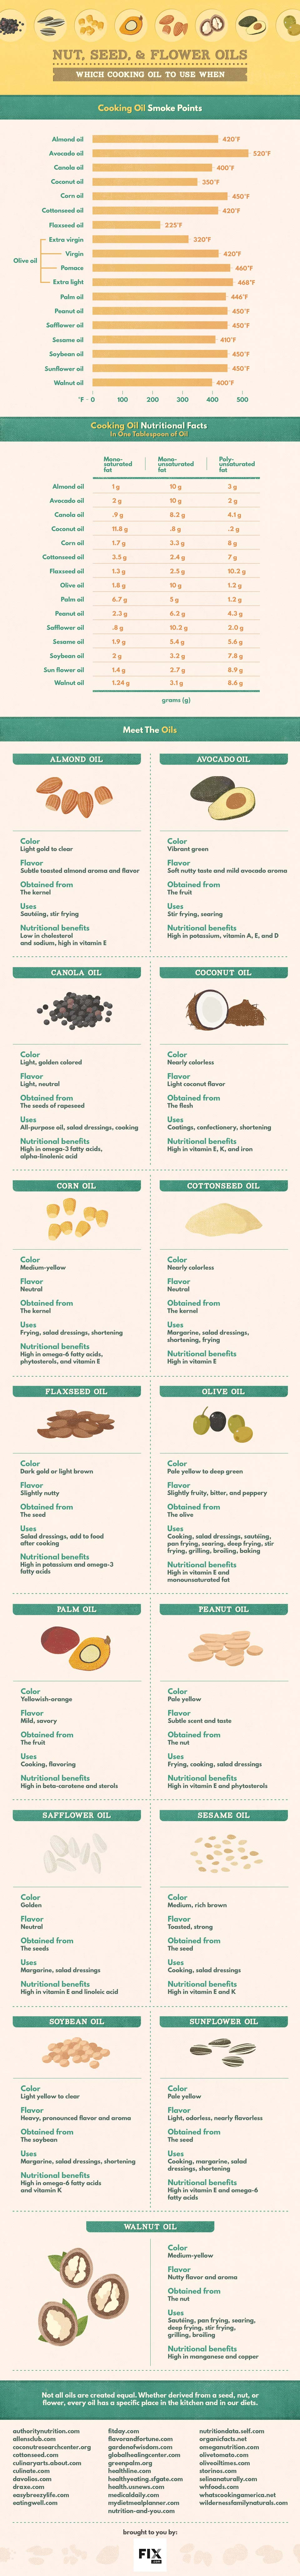 How to Choose Your Cooking Oils: A One-Stop Guide - Infographic